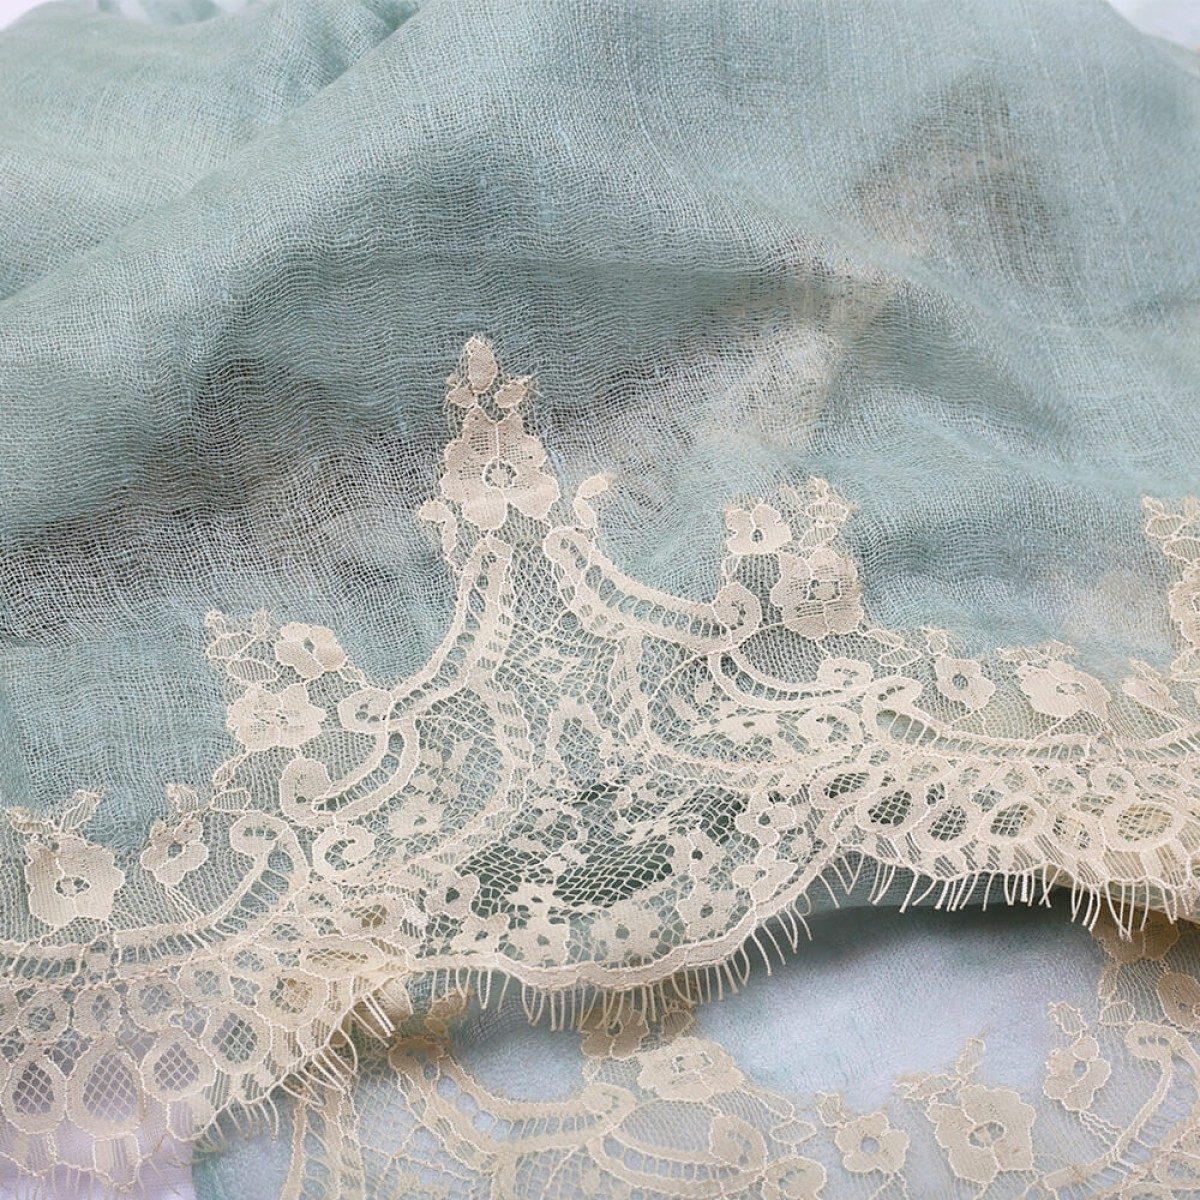 Lace Sheer Pashmina Scarf - Mint Green